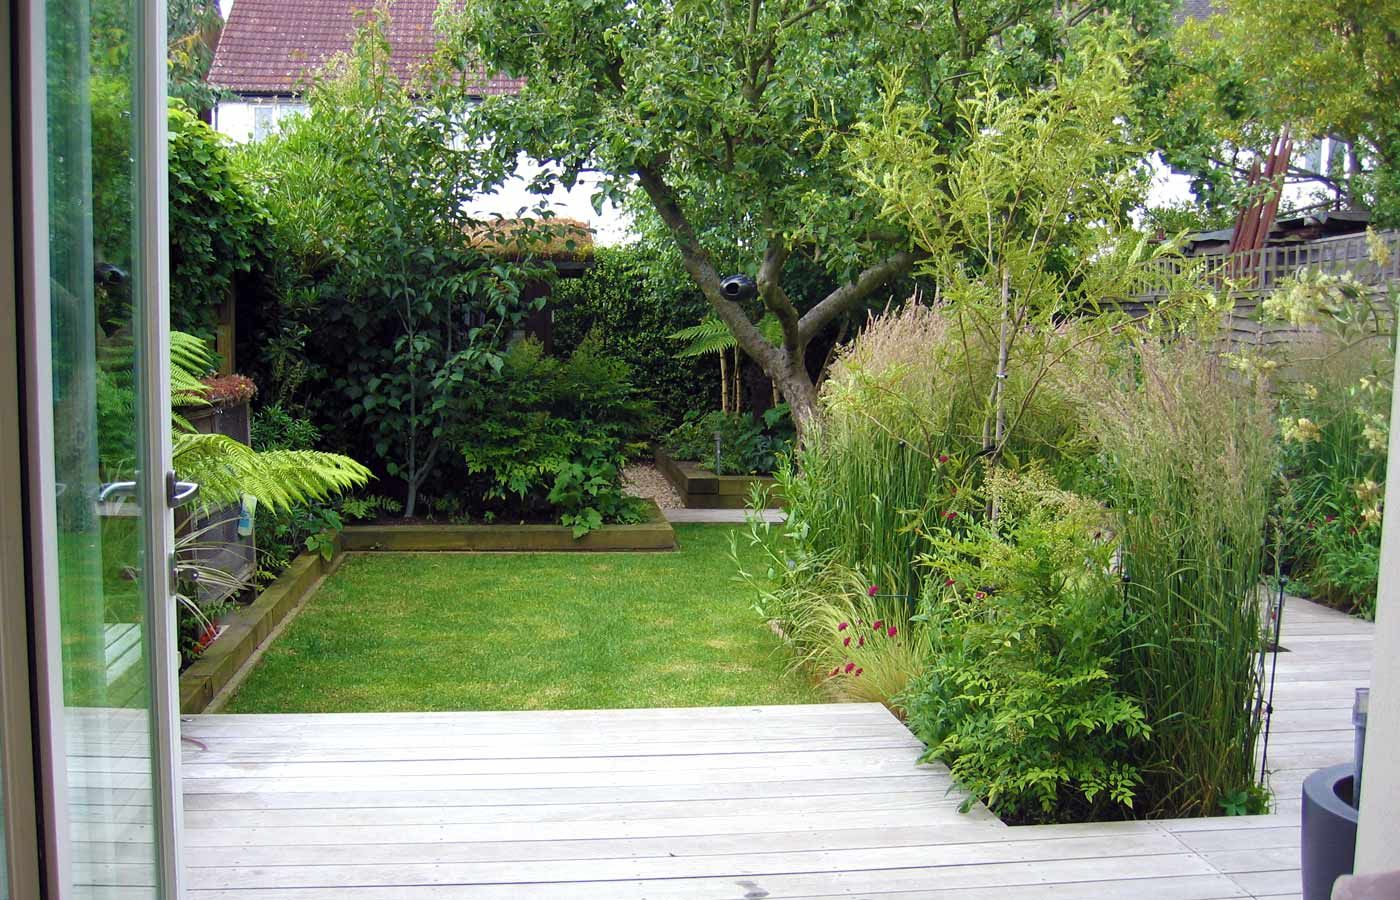 Small trees for lawn lawn and decing in small north for Garden plans for small gardens